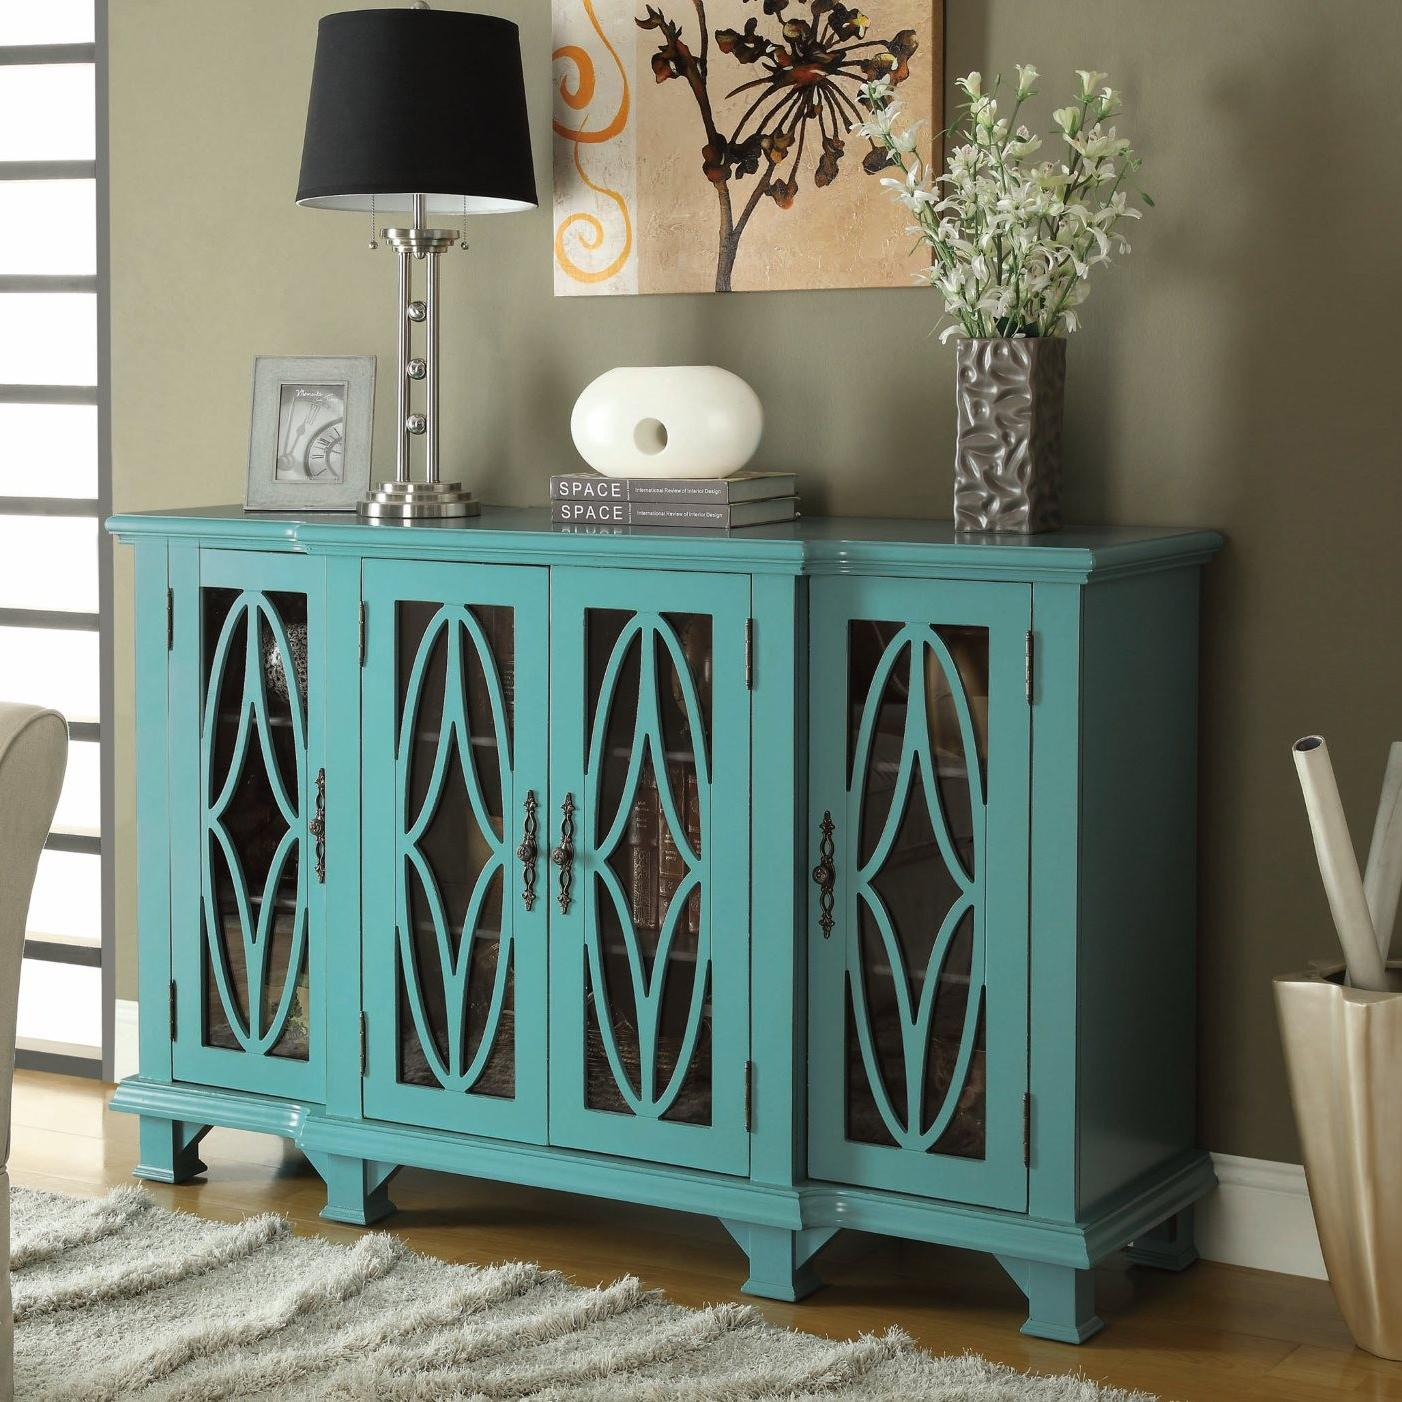 coaster accent cabinets large teal cabinet with glass doors products color eugene table threshold furniture west elm dining room chairs diy metal legs long side tables for living